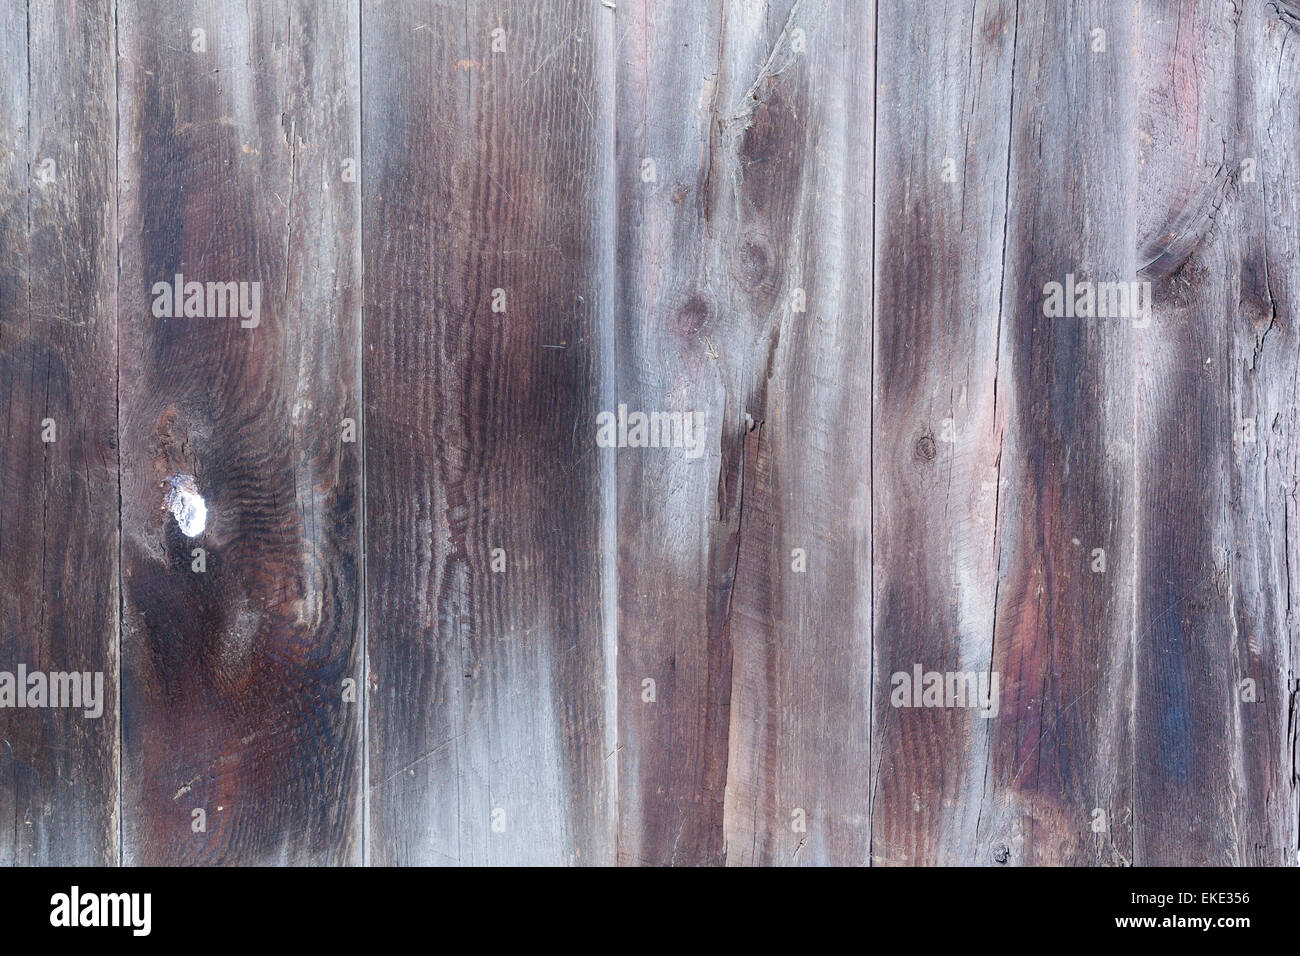 Old and weathered wooden planks. - Stock Image